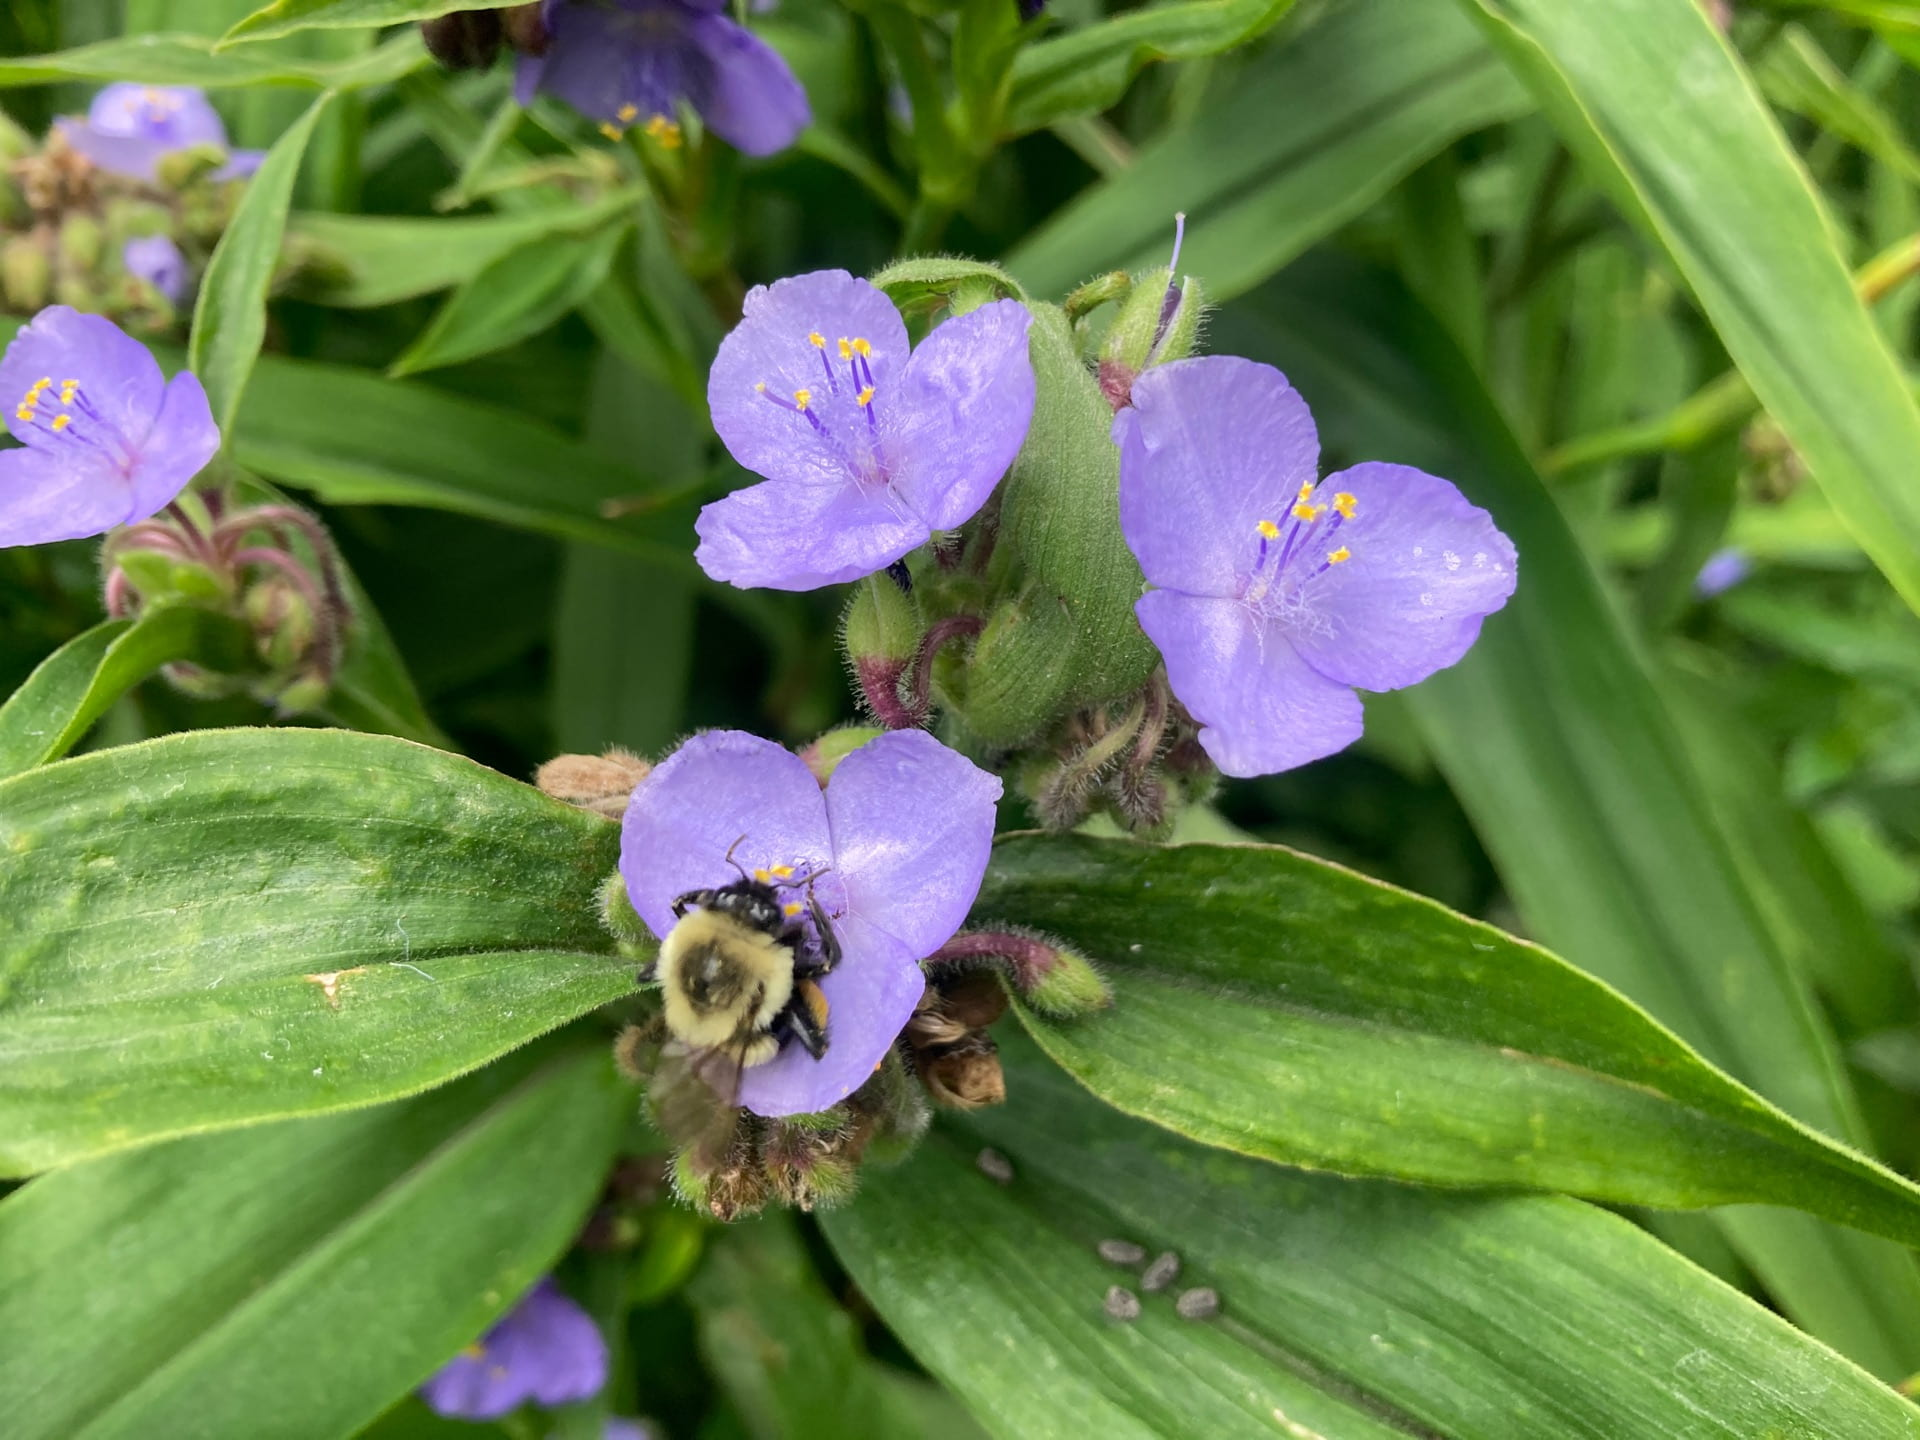 The long blooming flowers of Tradescantia virginiana attract pollinators through the summer.